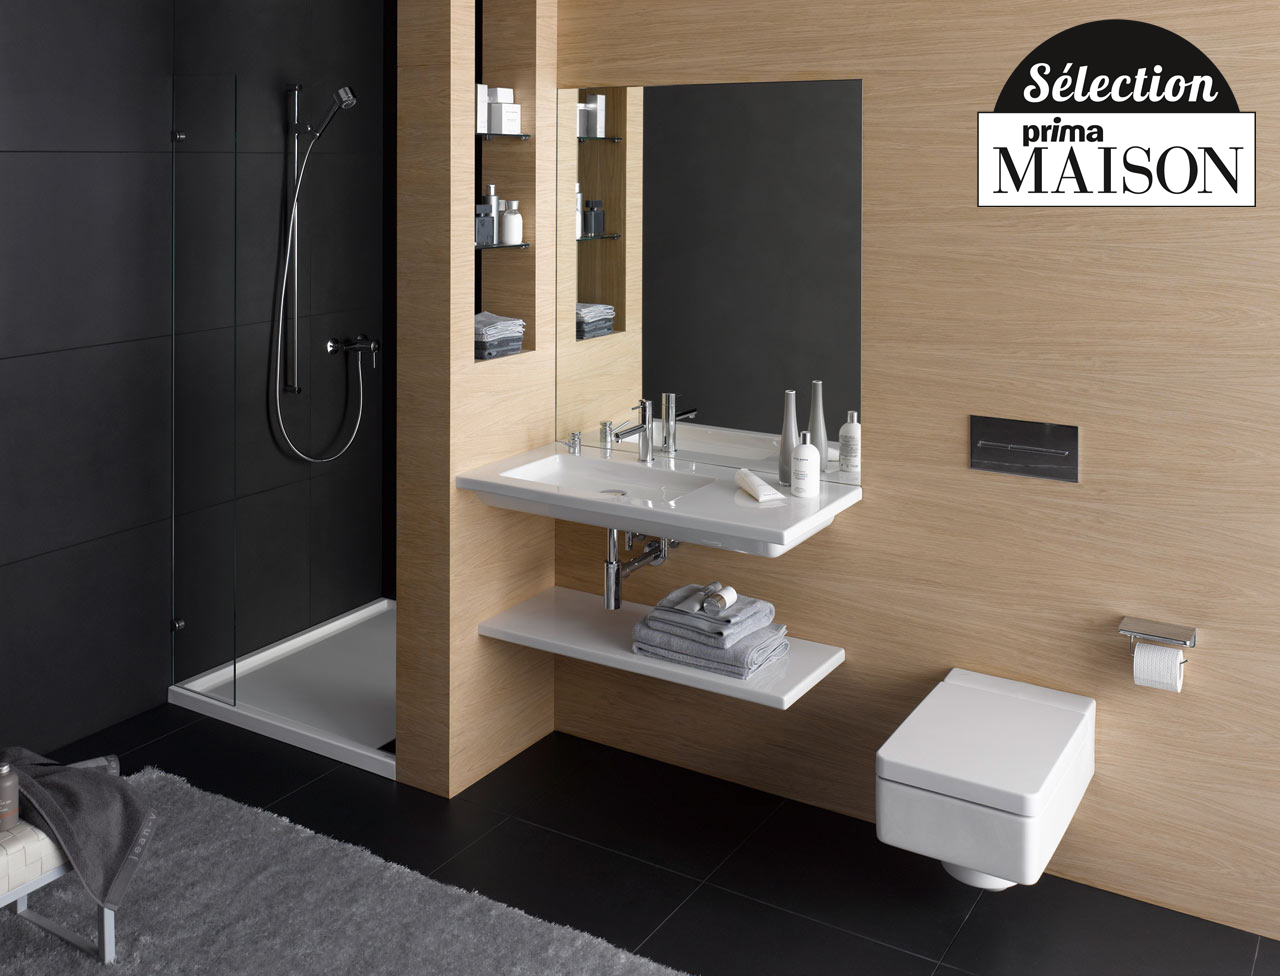 D coration salle de bain 2016 exemples d 39 am nagements for Decoration de salle de bain